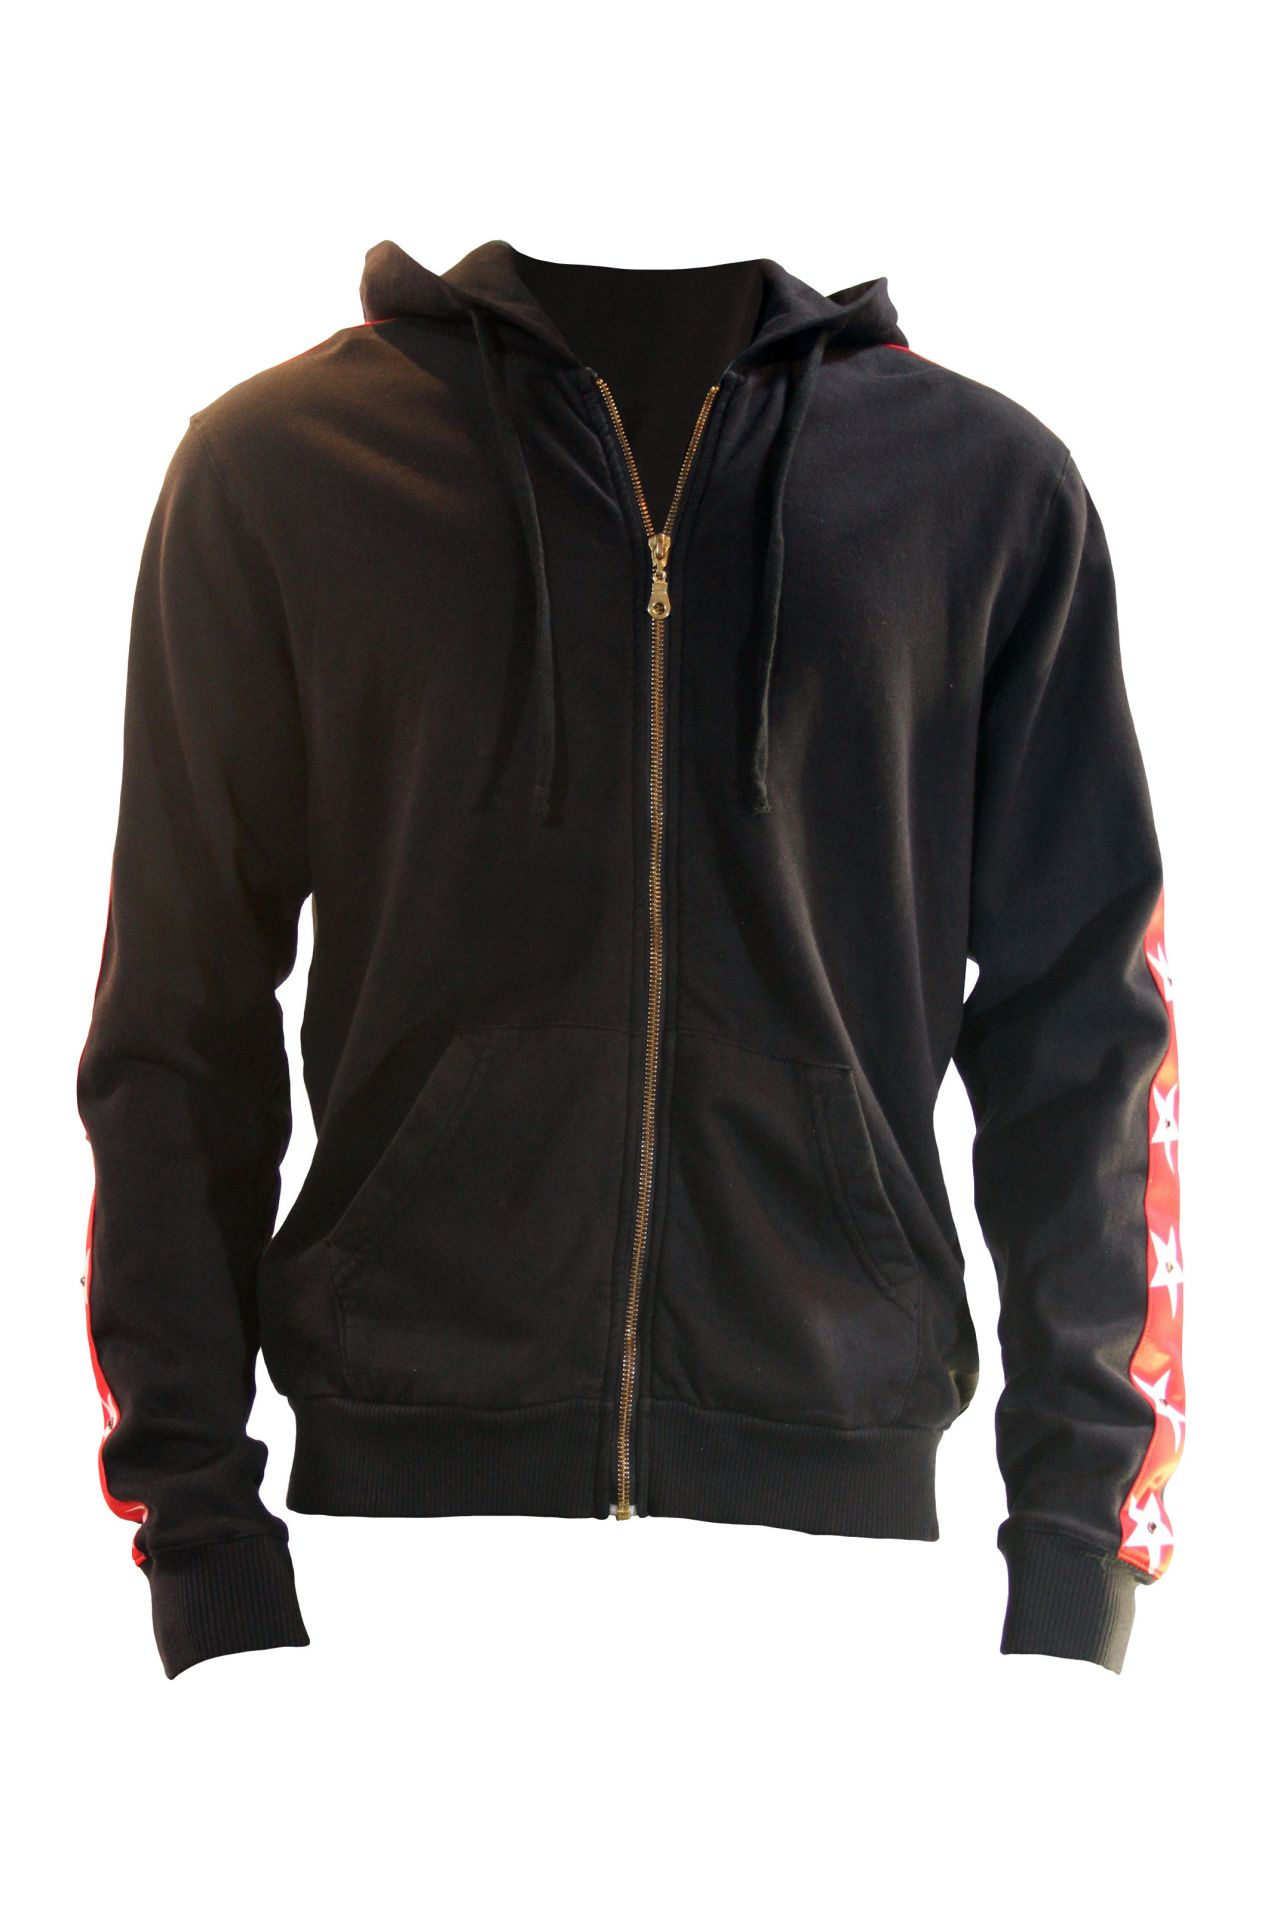 STAR HOODIE IN BLACK WITH RED STRIPES